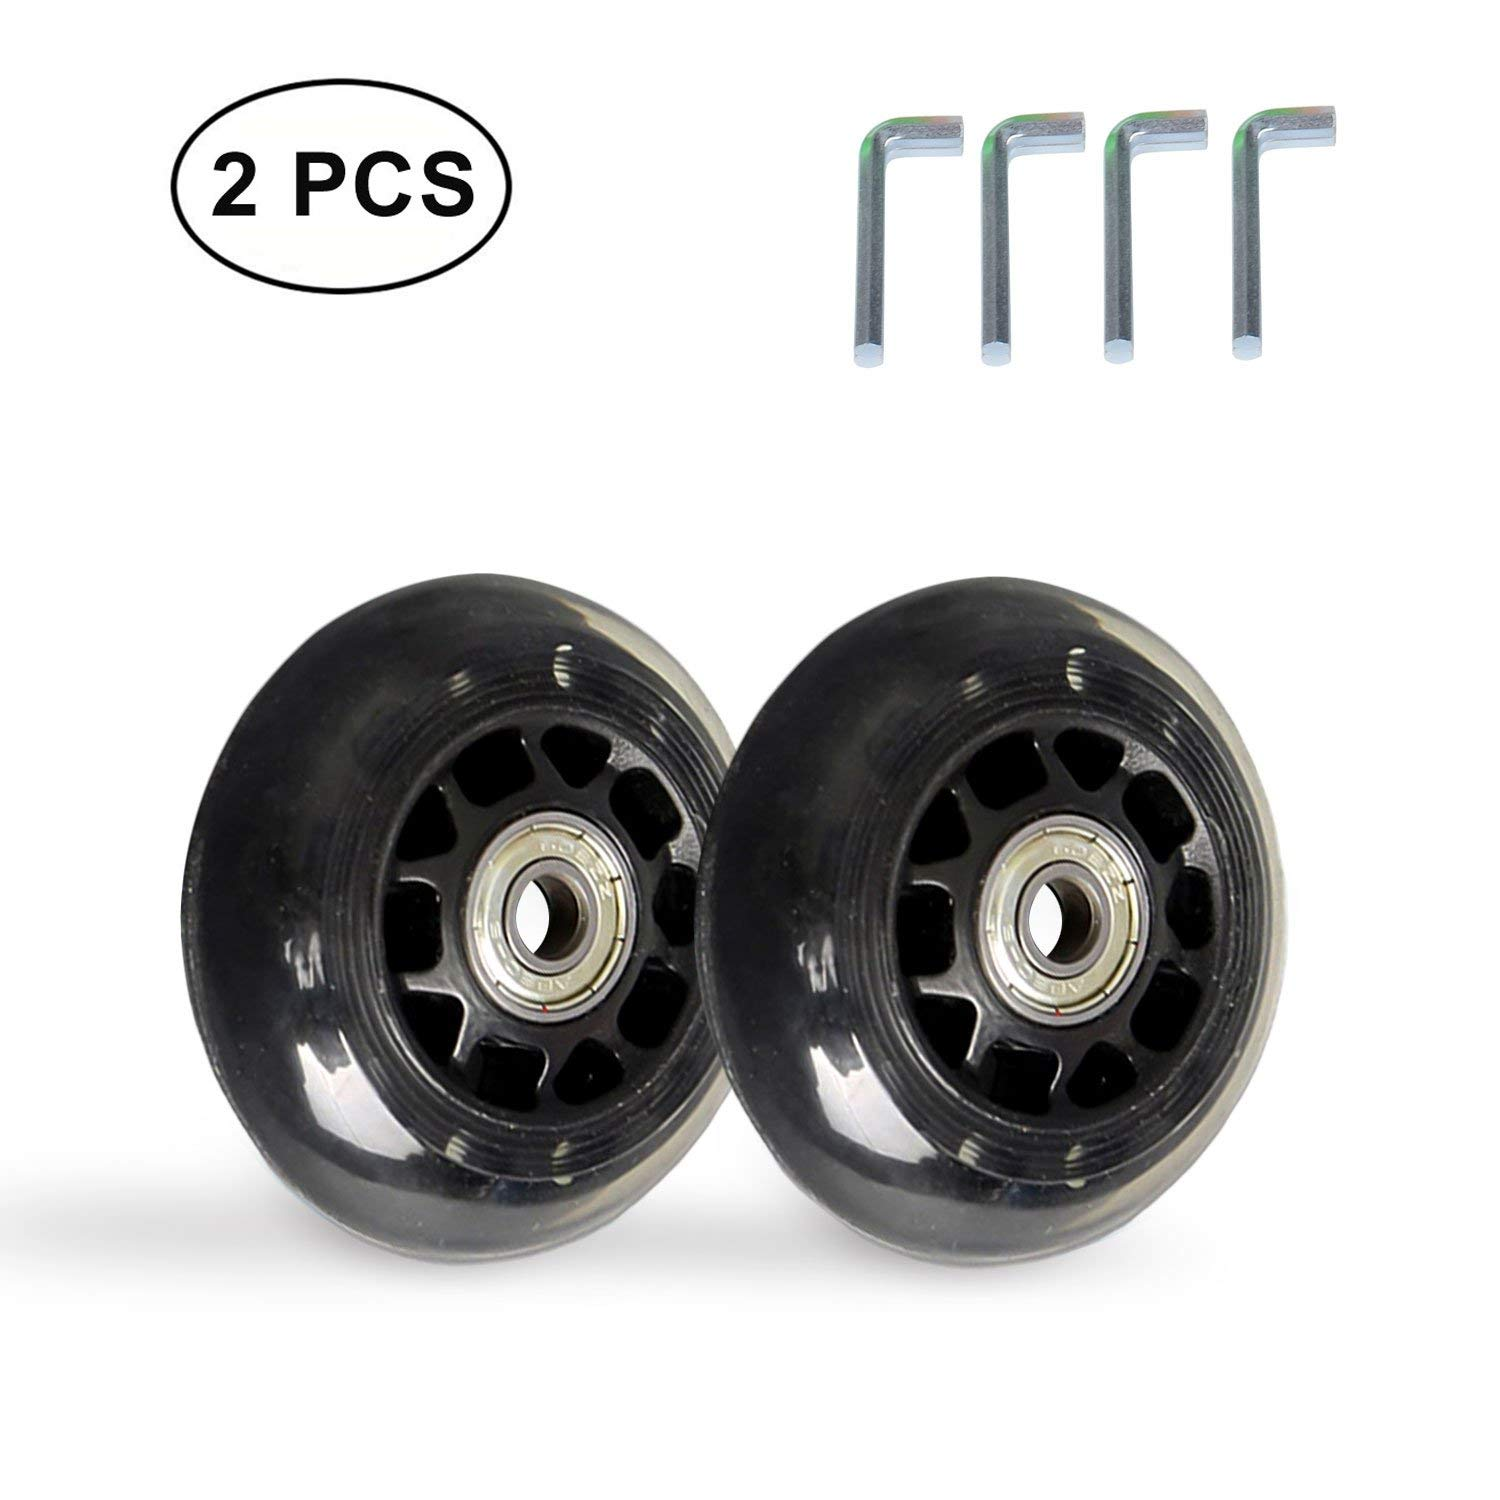 B.LeekS RollerbladeSkate Wheel Replacements, Kick Scooter Replacement Wheels with Bearings, One Set of (2) Wheels, Multiple Sizes & Colors with LED Illuminating Lights